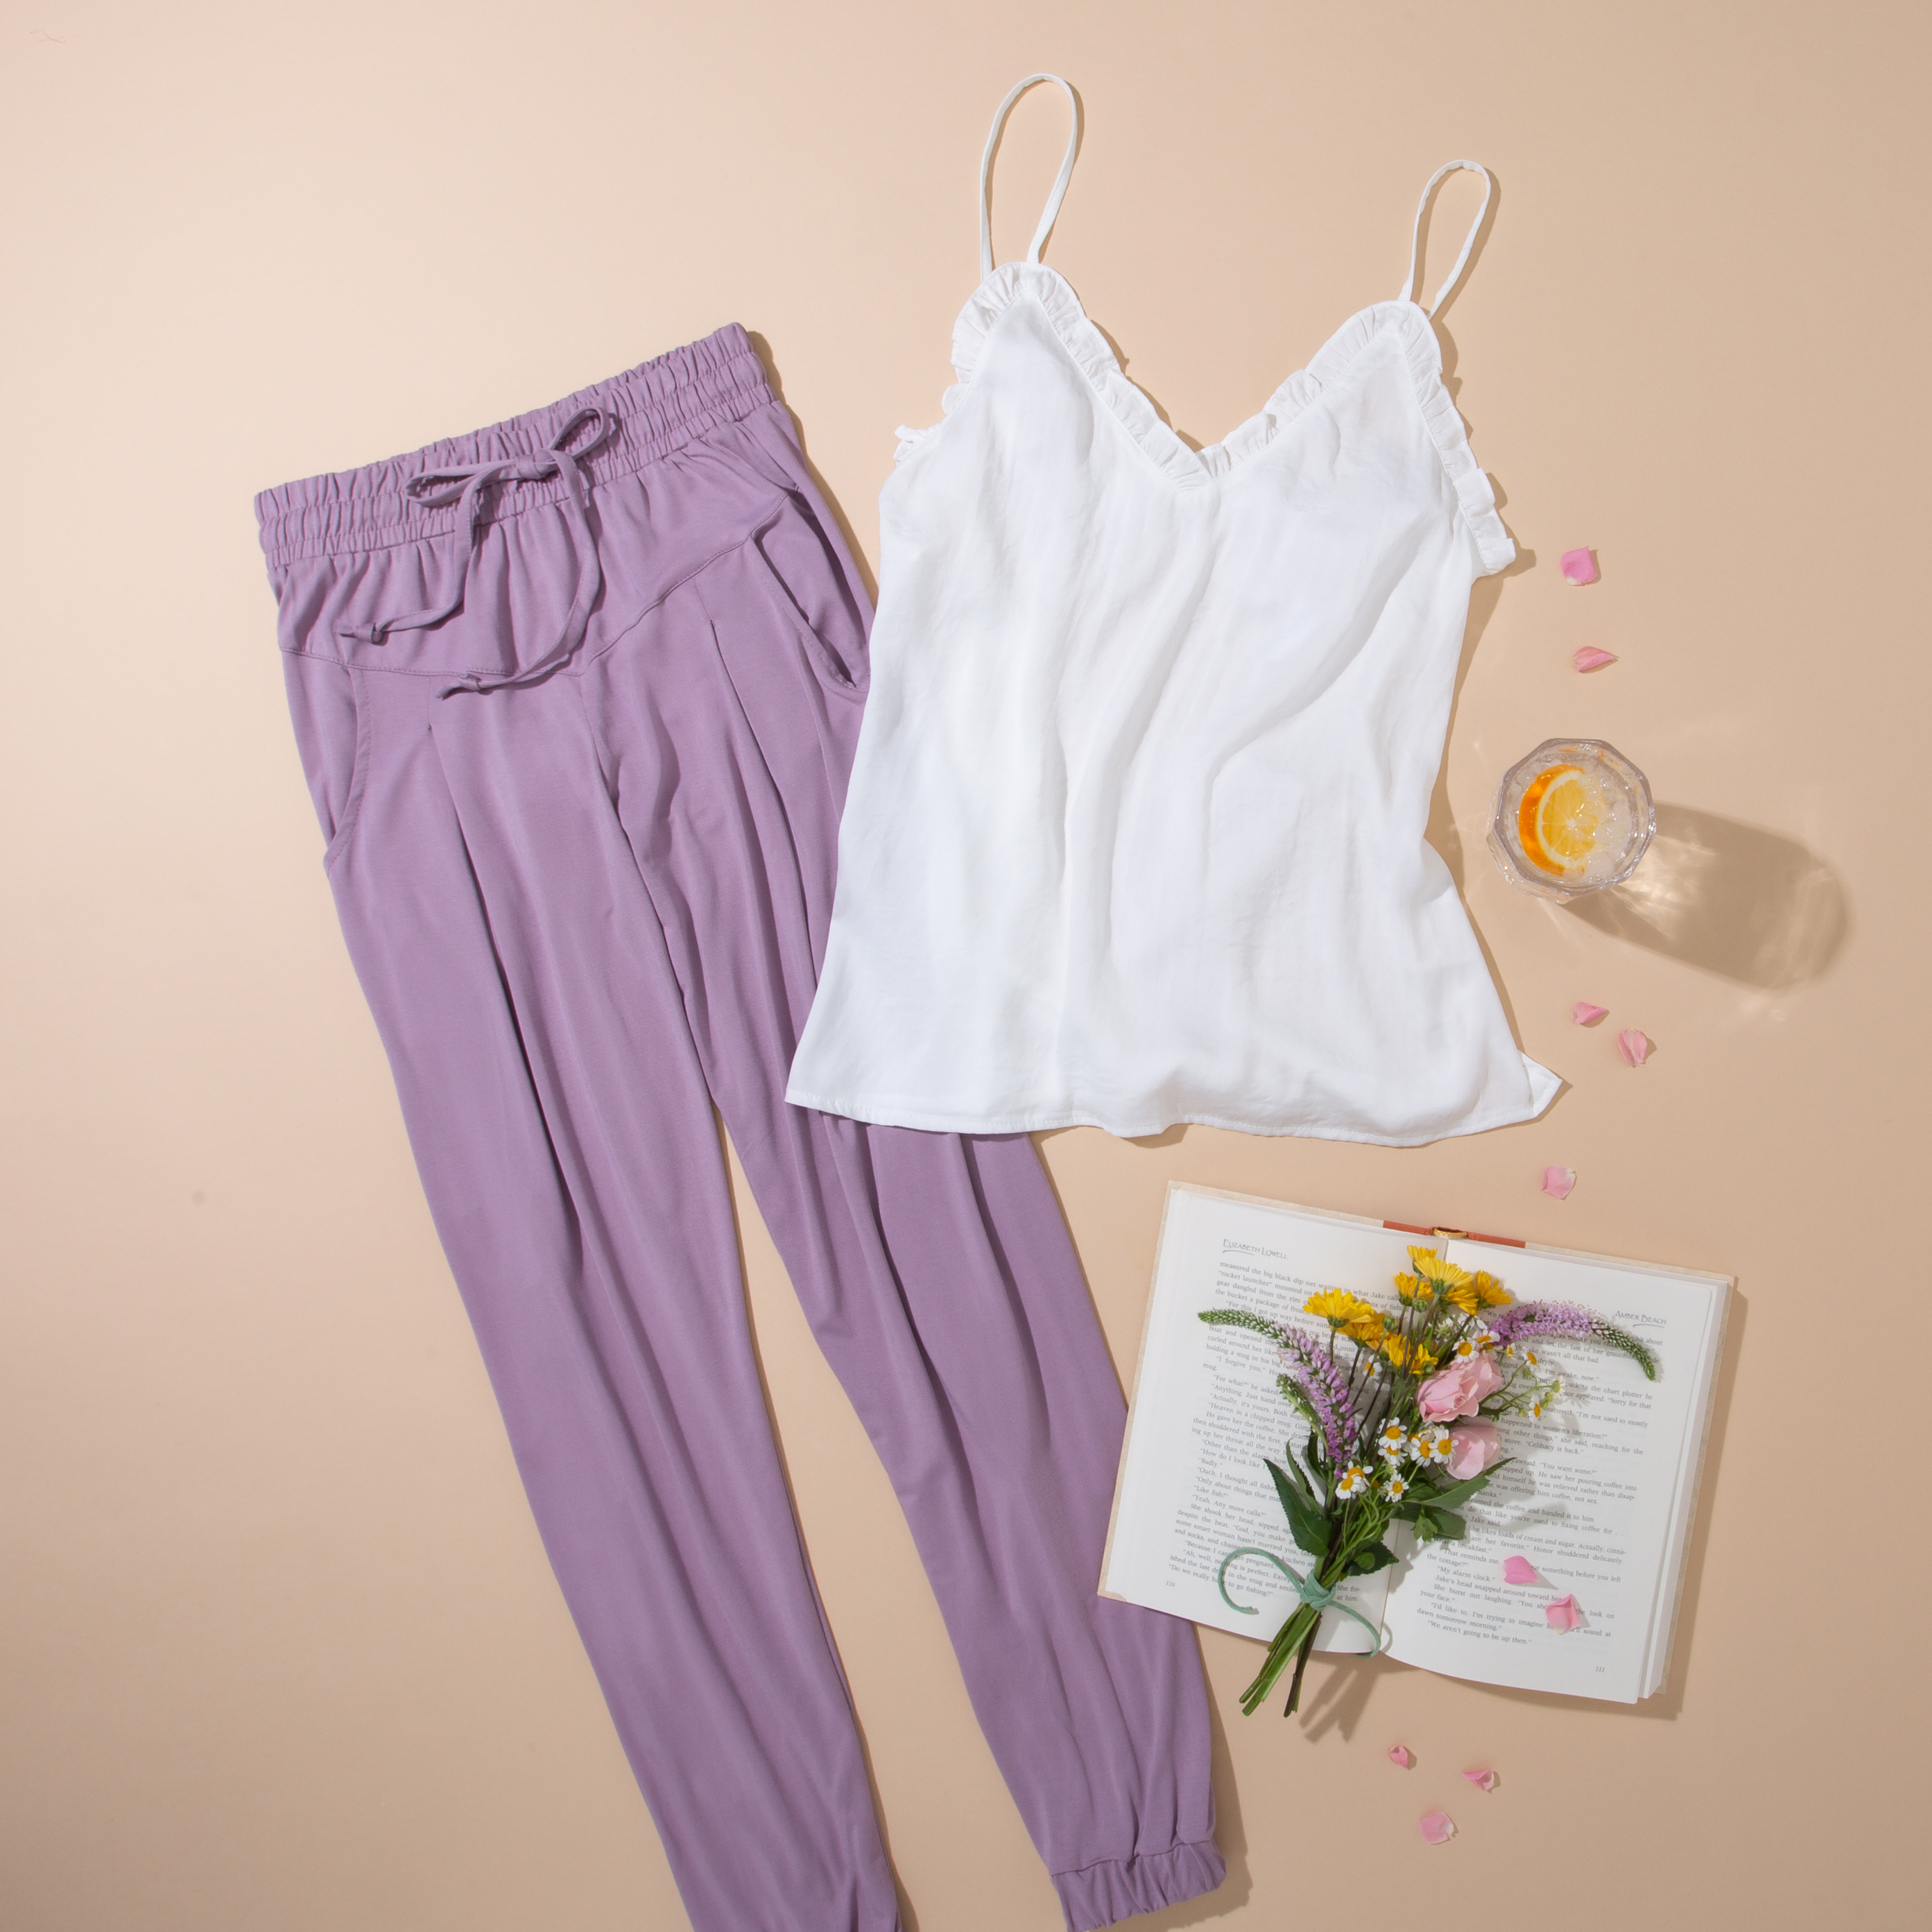 Woman's Summer Loungewear Outfit